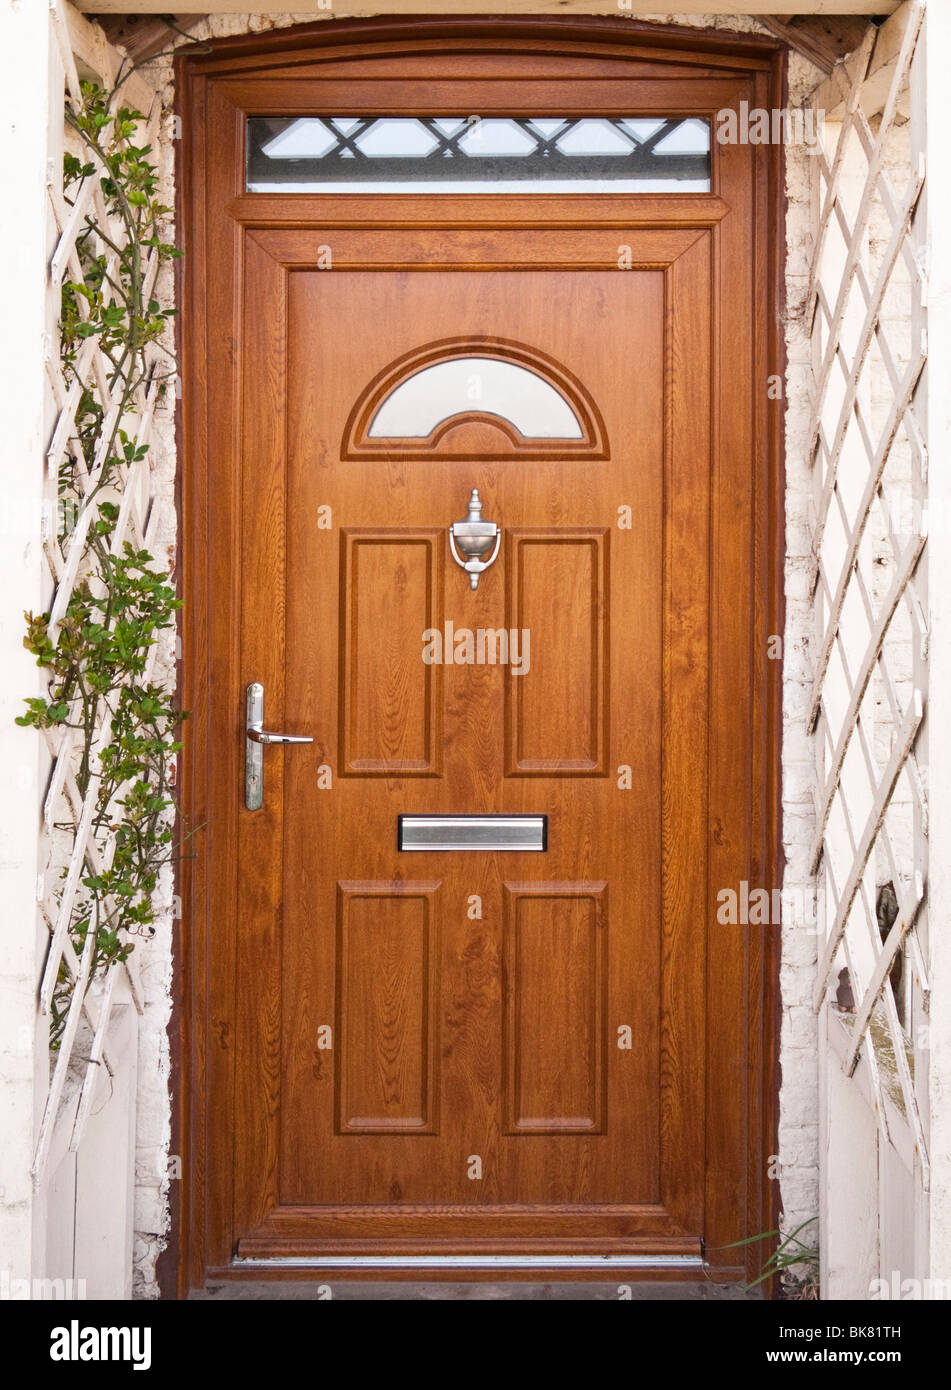 Wood Front Door Uk Stockfotos & Wood Front Door Uk Bilder - Alamy